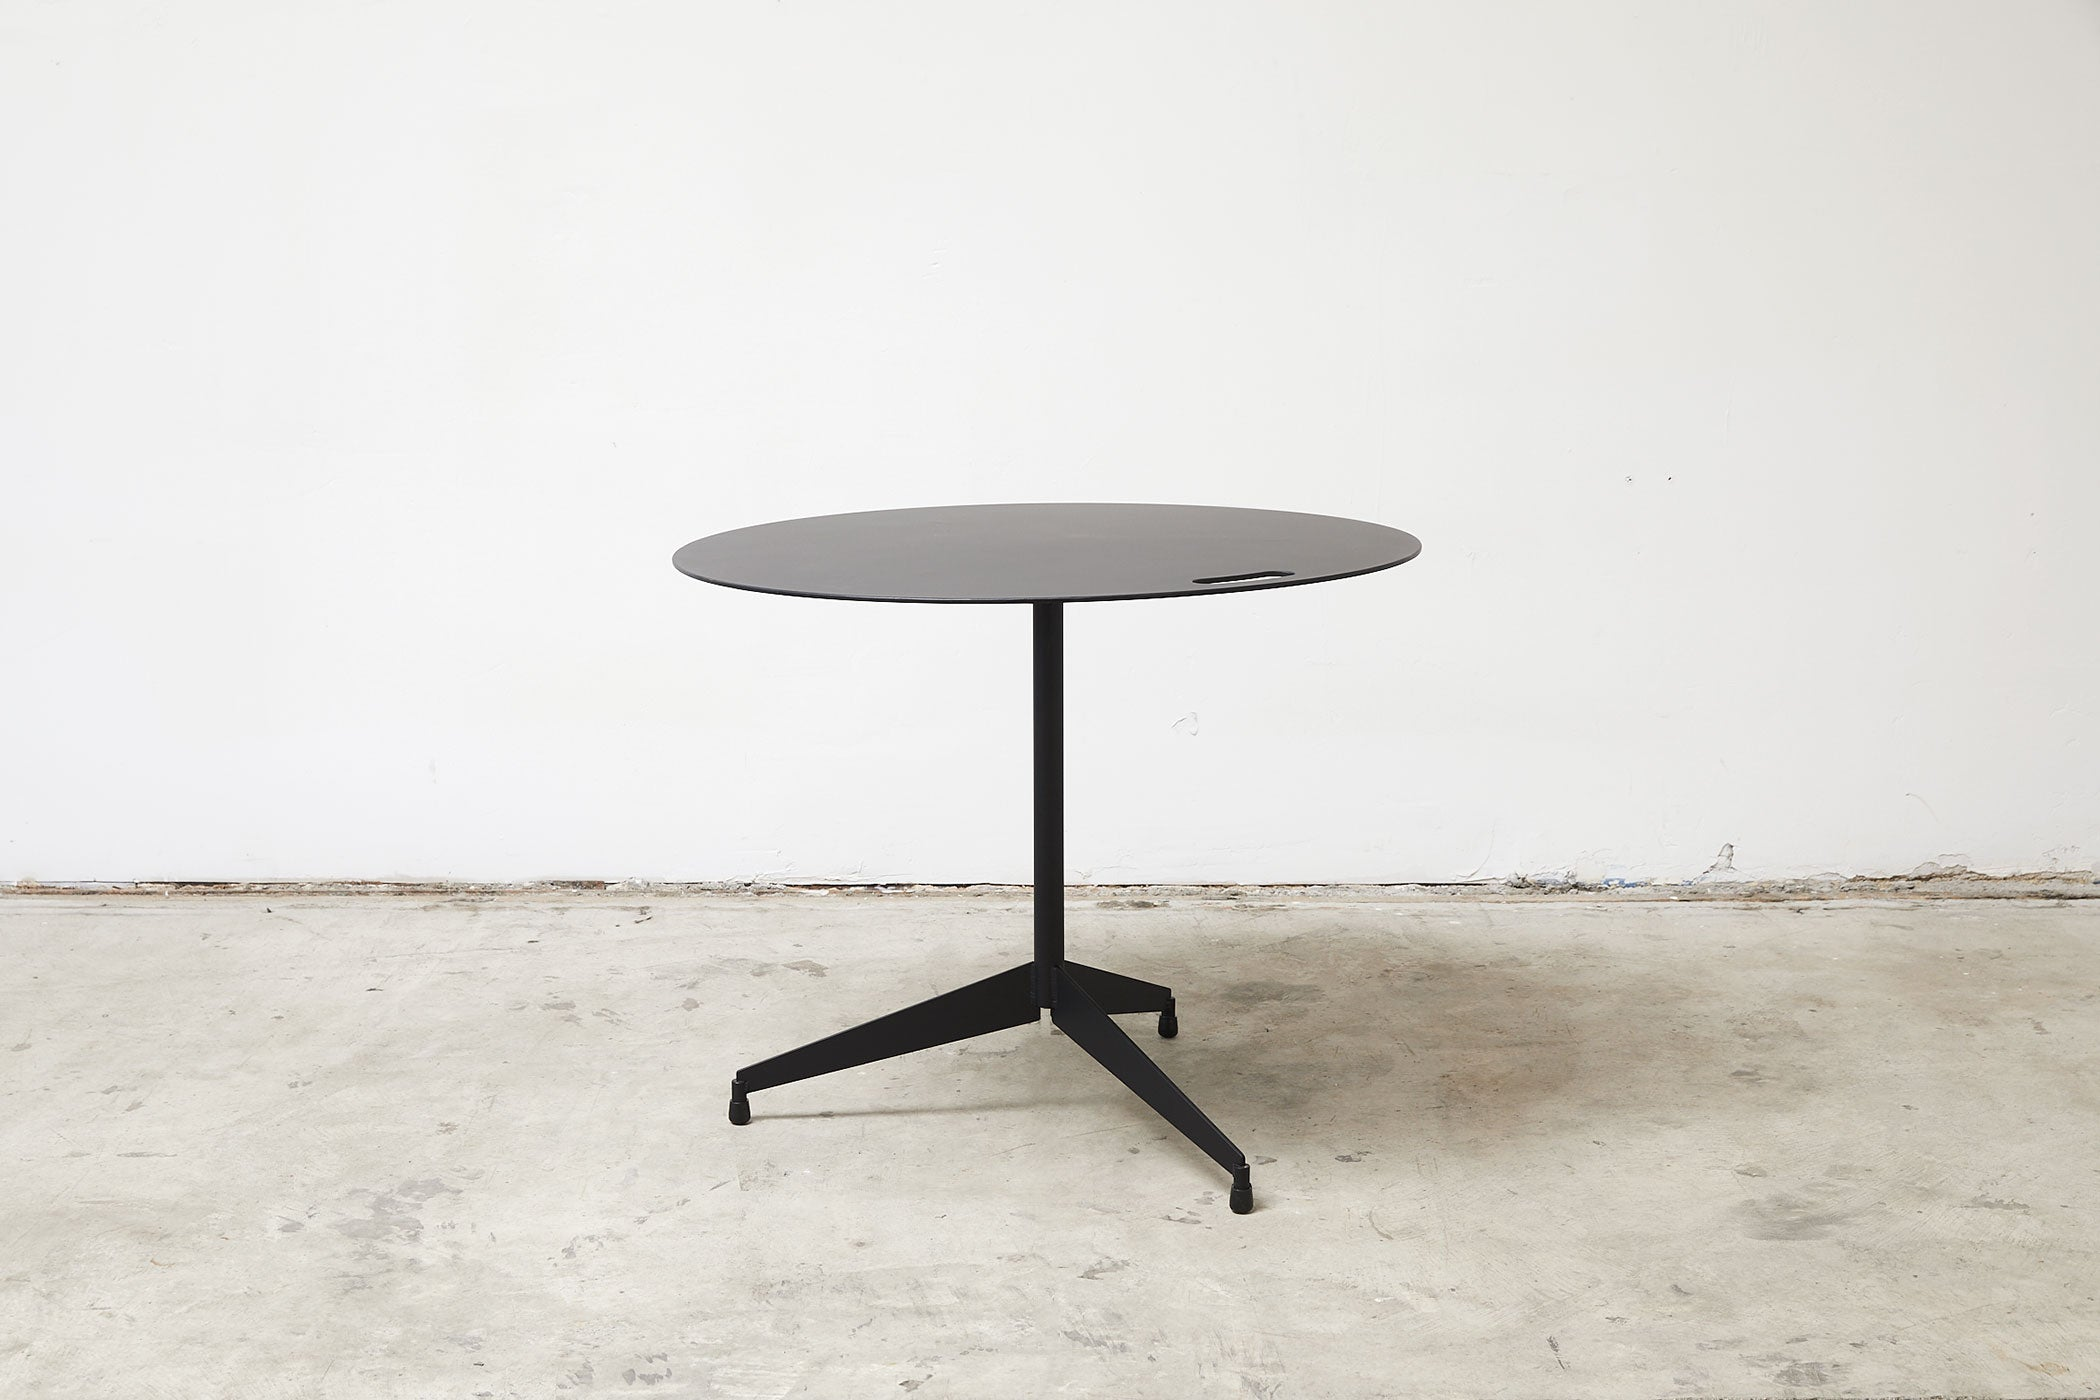 RAD Furniture's Round Aluminum-Top Cafe Table for Four